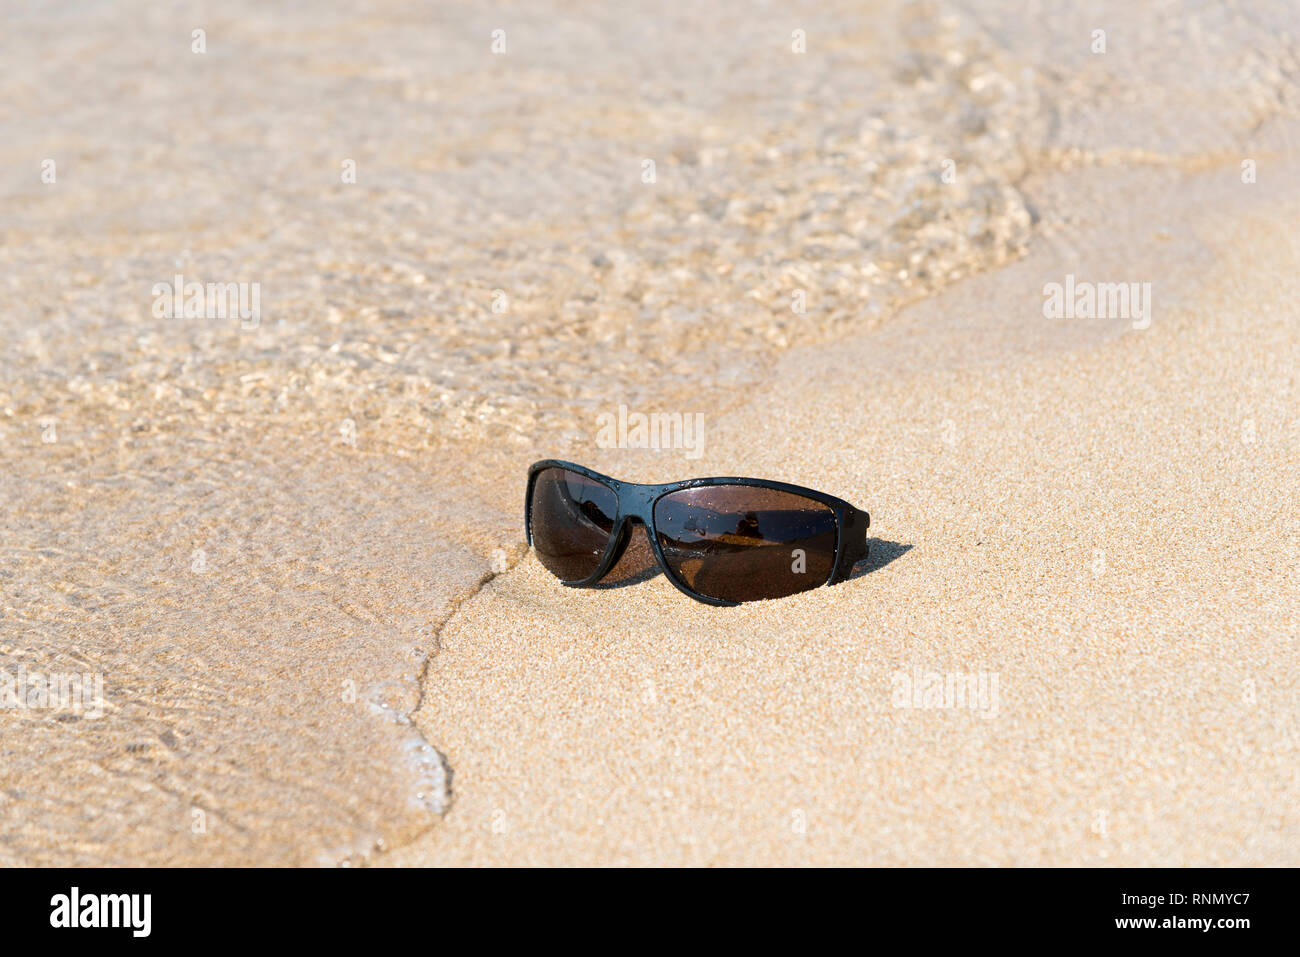 Black sunglasess left in the sand on the beach - Stock Image